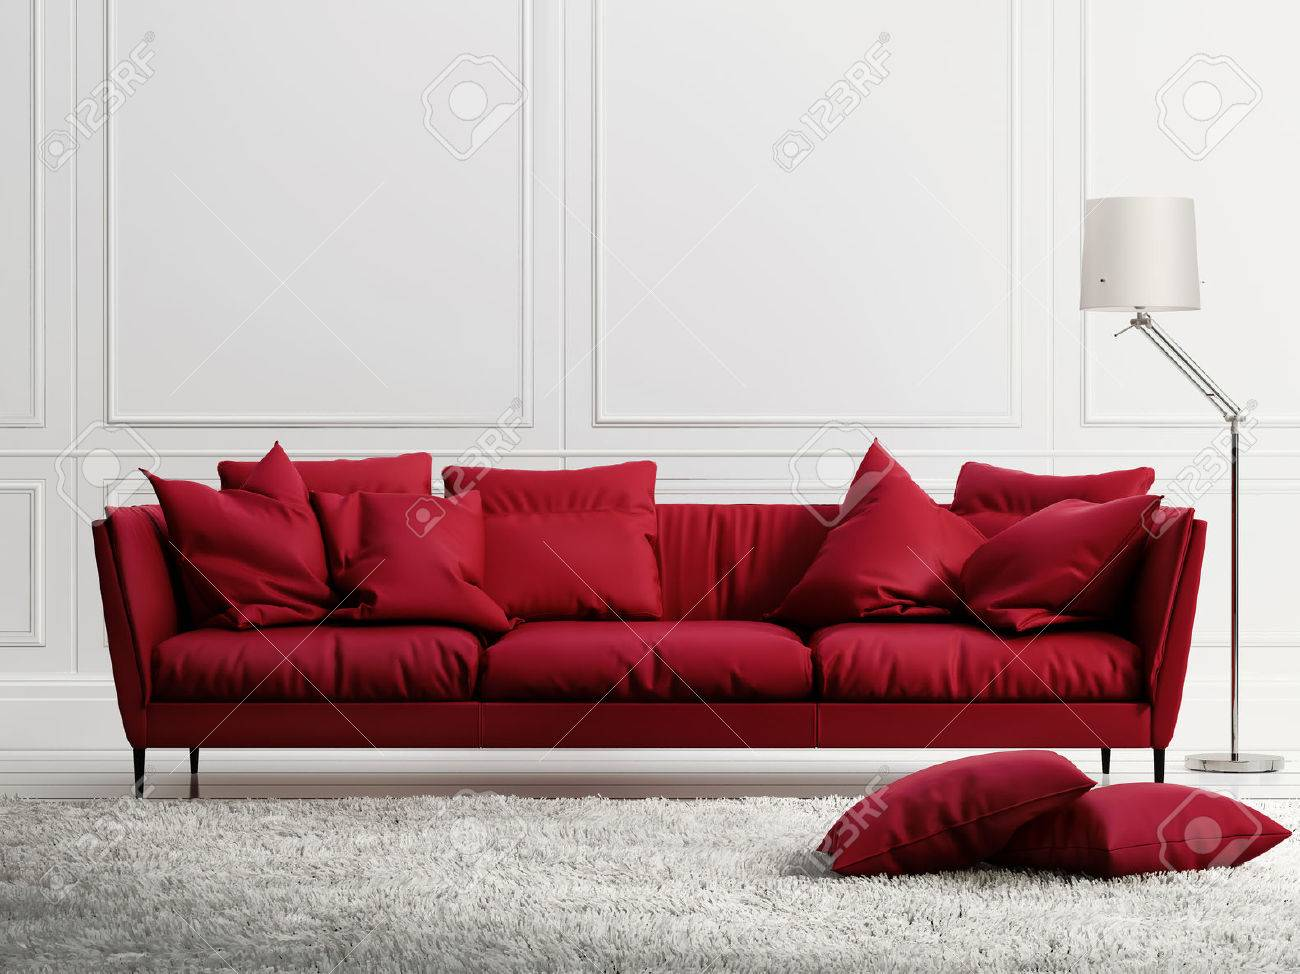 Red leather sofa in classic white style interior Stock Photo - 25169617